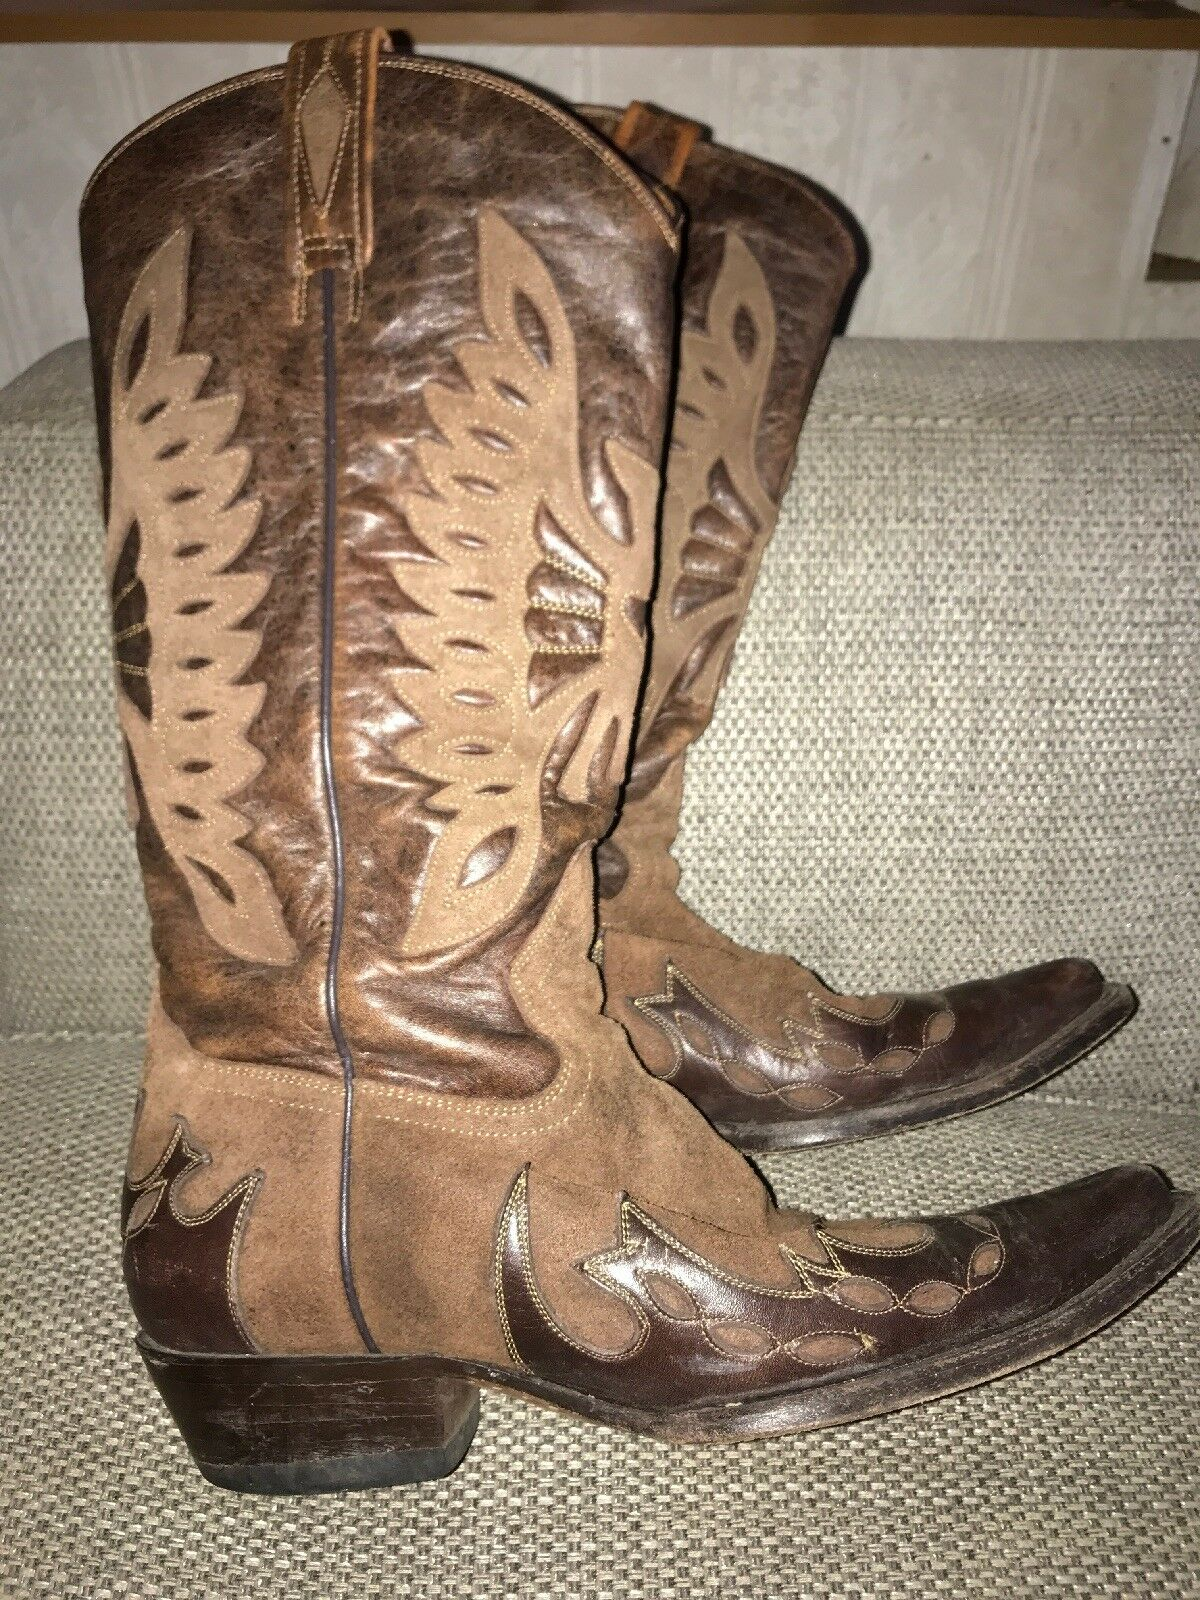 Buffalo Brown 2 Tone Leather Western country Cowboy Boots Boots Boots UK 7 EU40 VGC 0a49e0